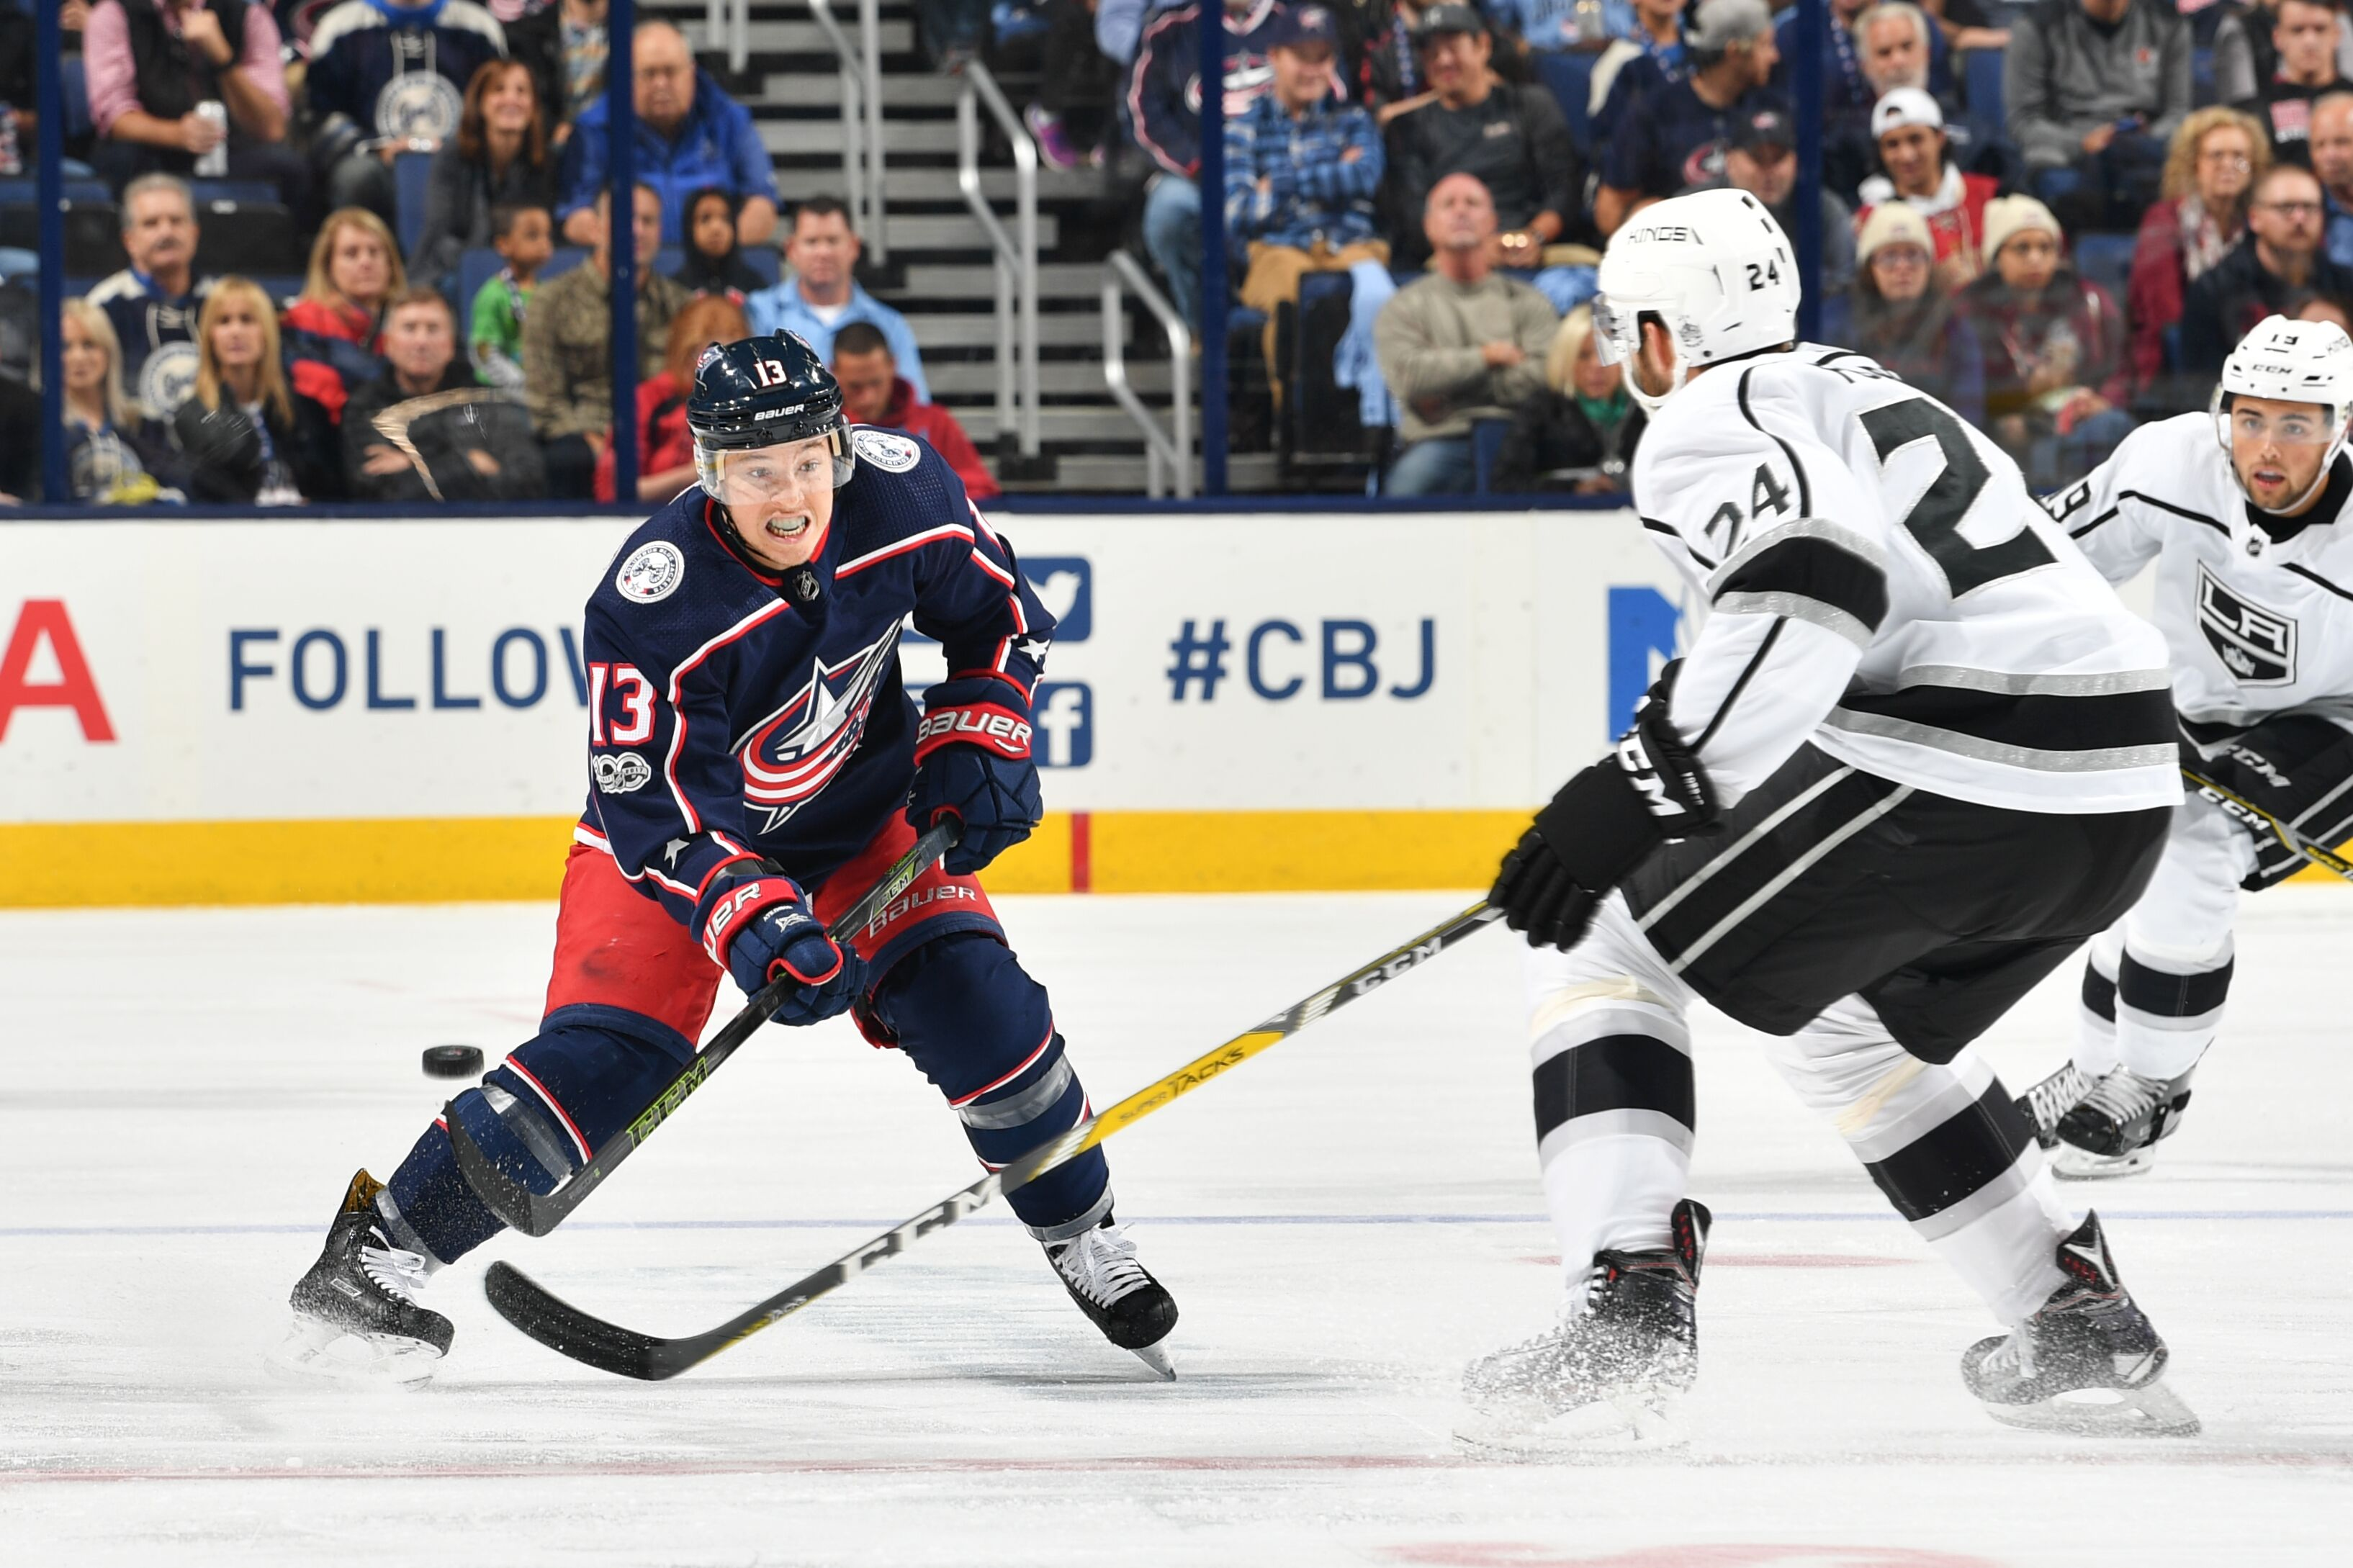 864790508-los-angeles-kings-v-columbus-blue-jackets.jpg